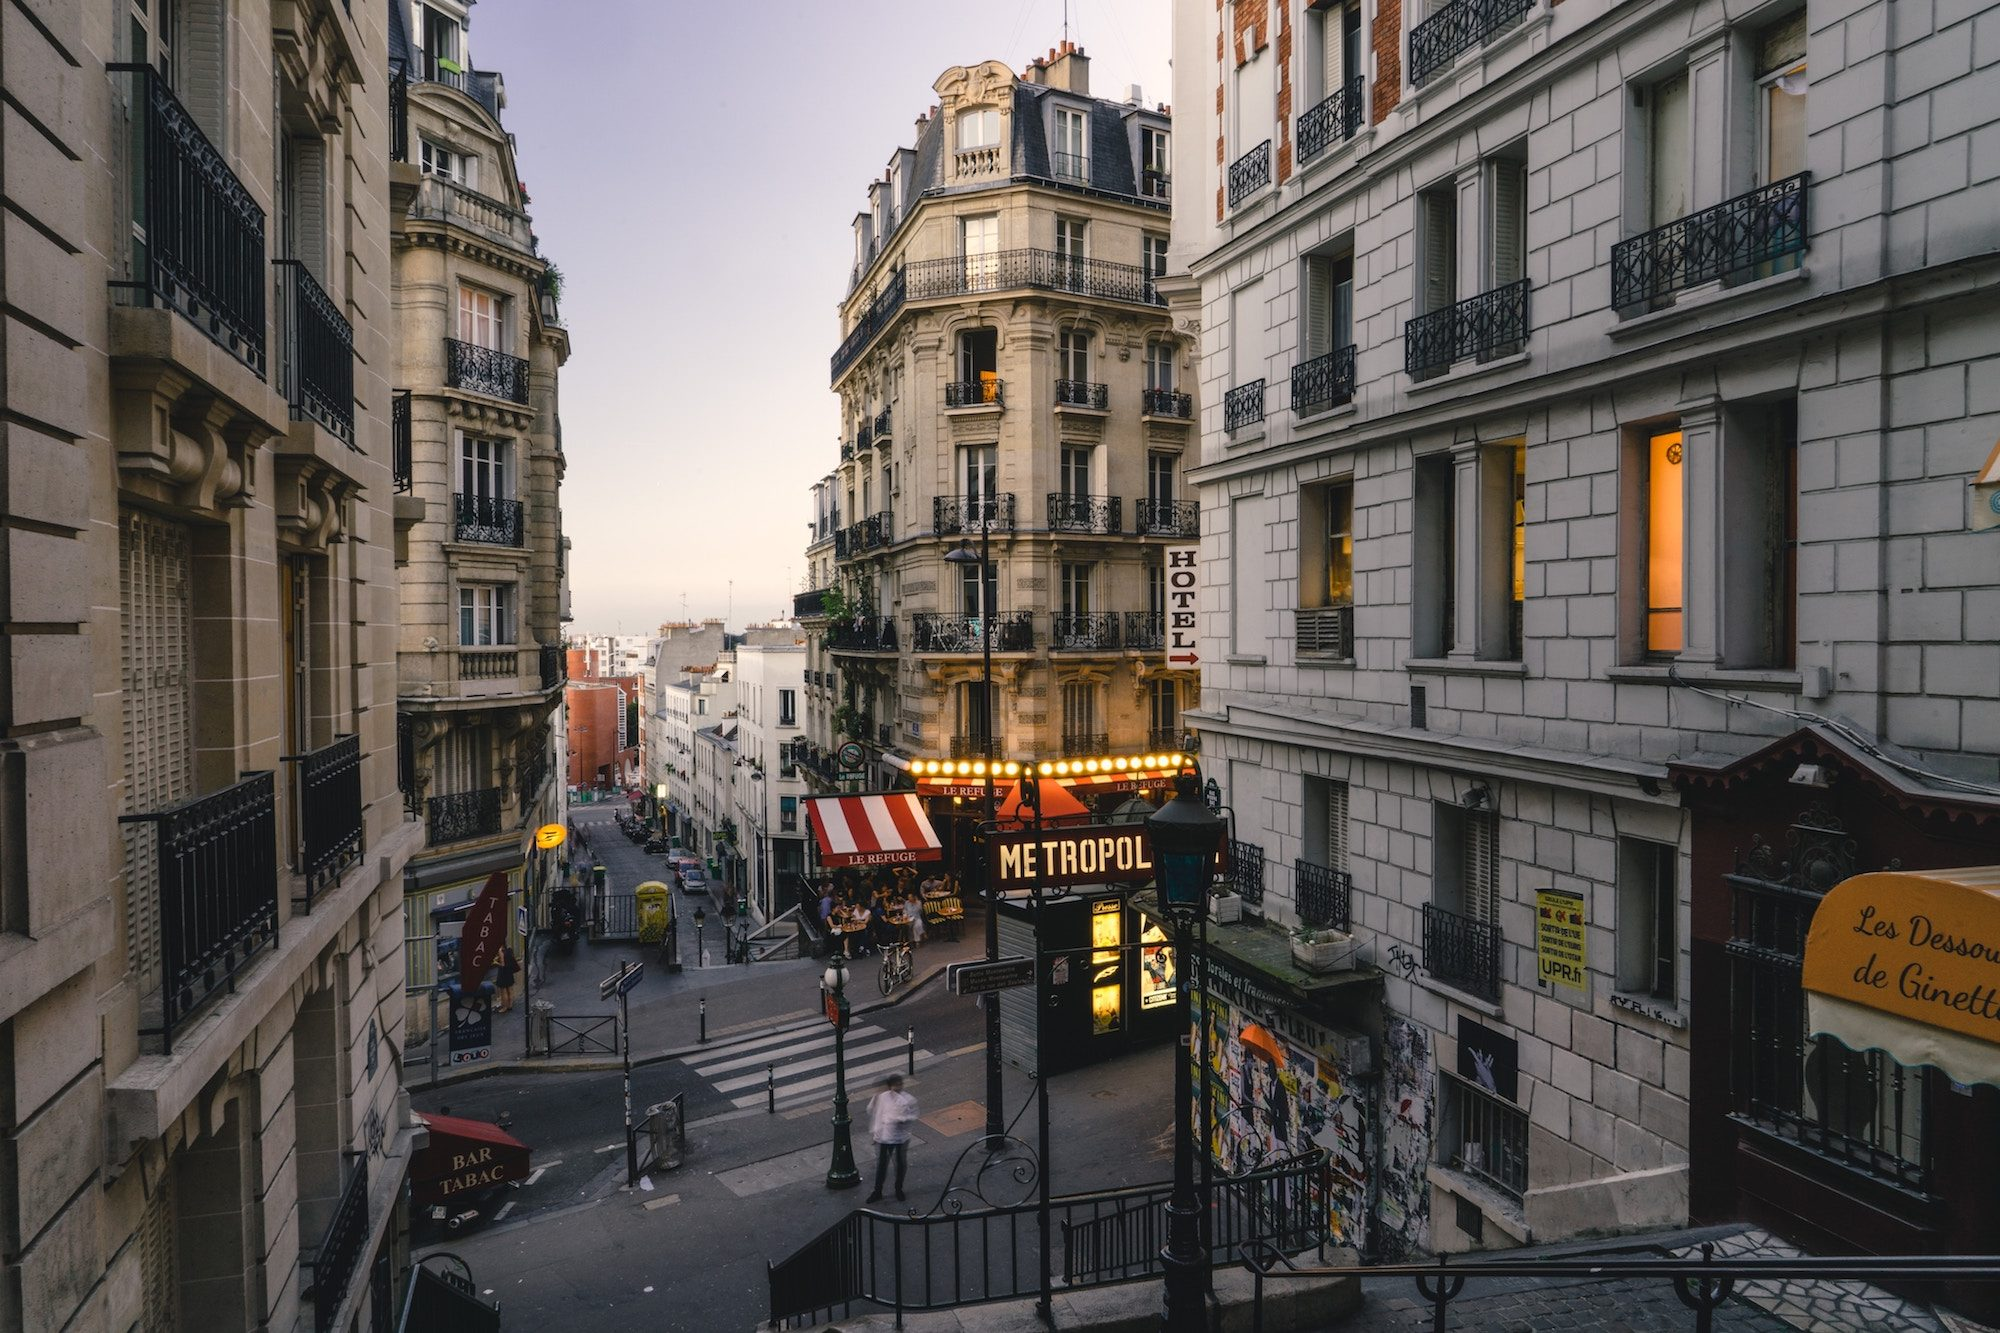 HiP Paris Blog tells the story of la rentrée before Parisians return from the summer holidays, which is when the city is at its quietest, including this Montmartre neighborhood.